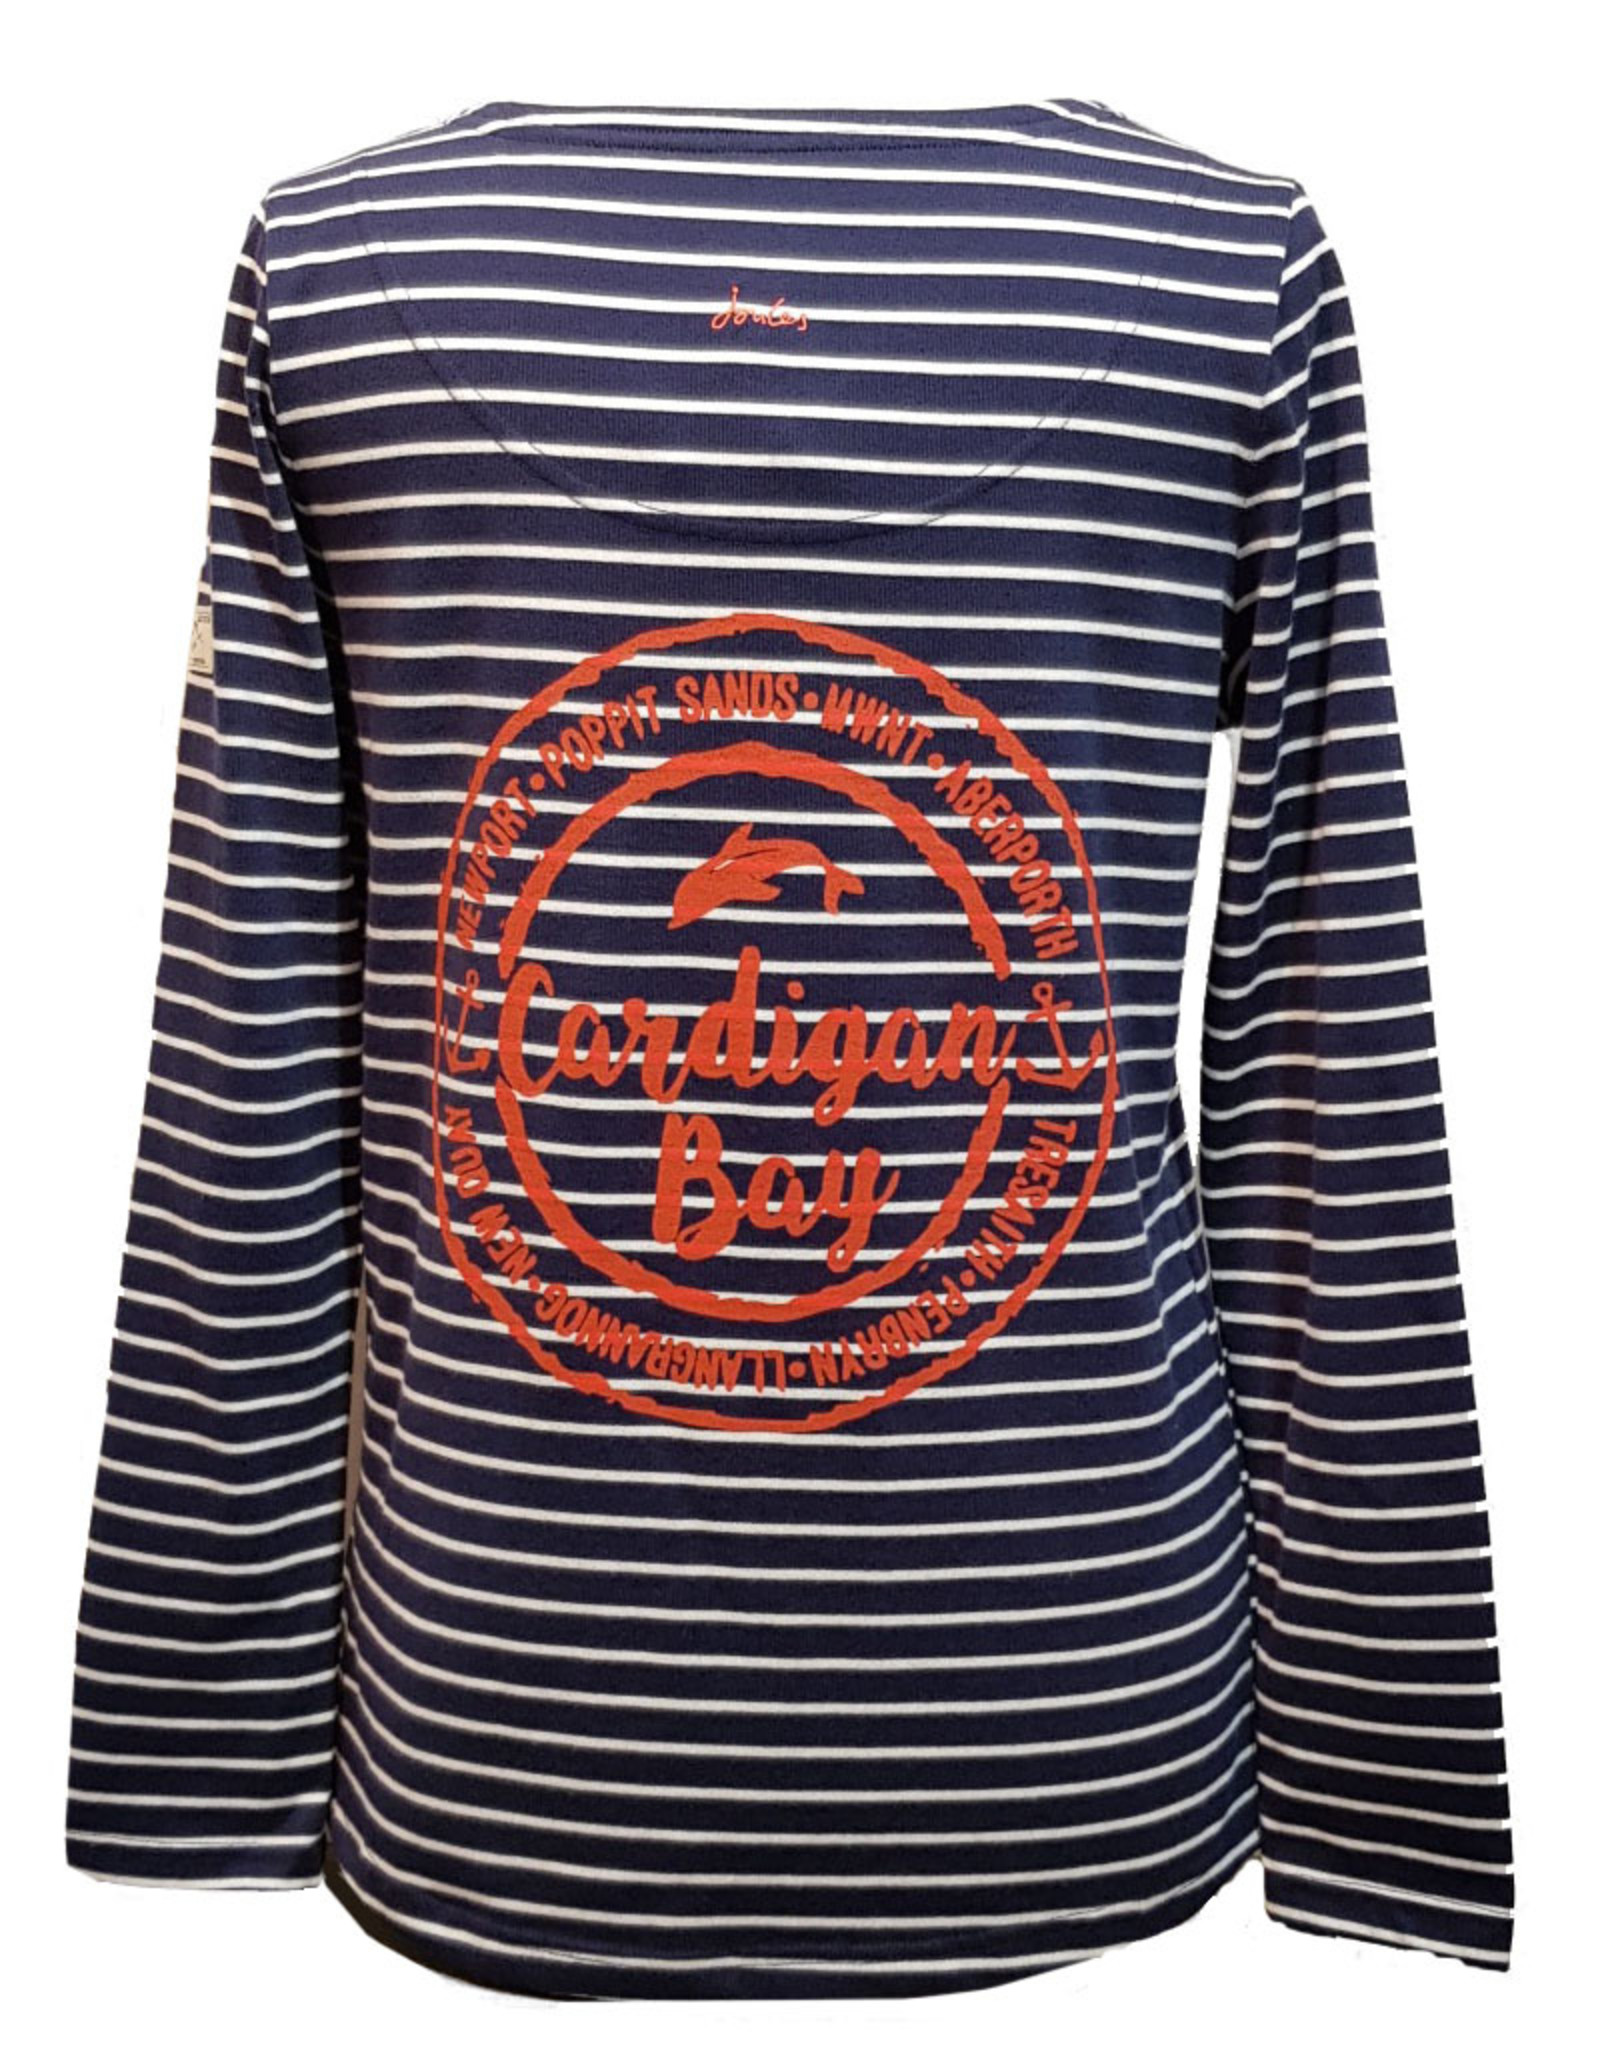 Joules Joules Harbour Long Sleeve Jersey Top Cardigan Bay Dolphin